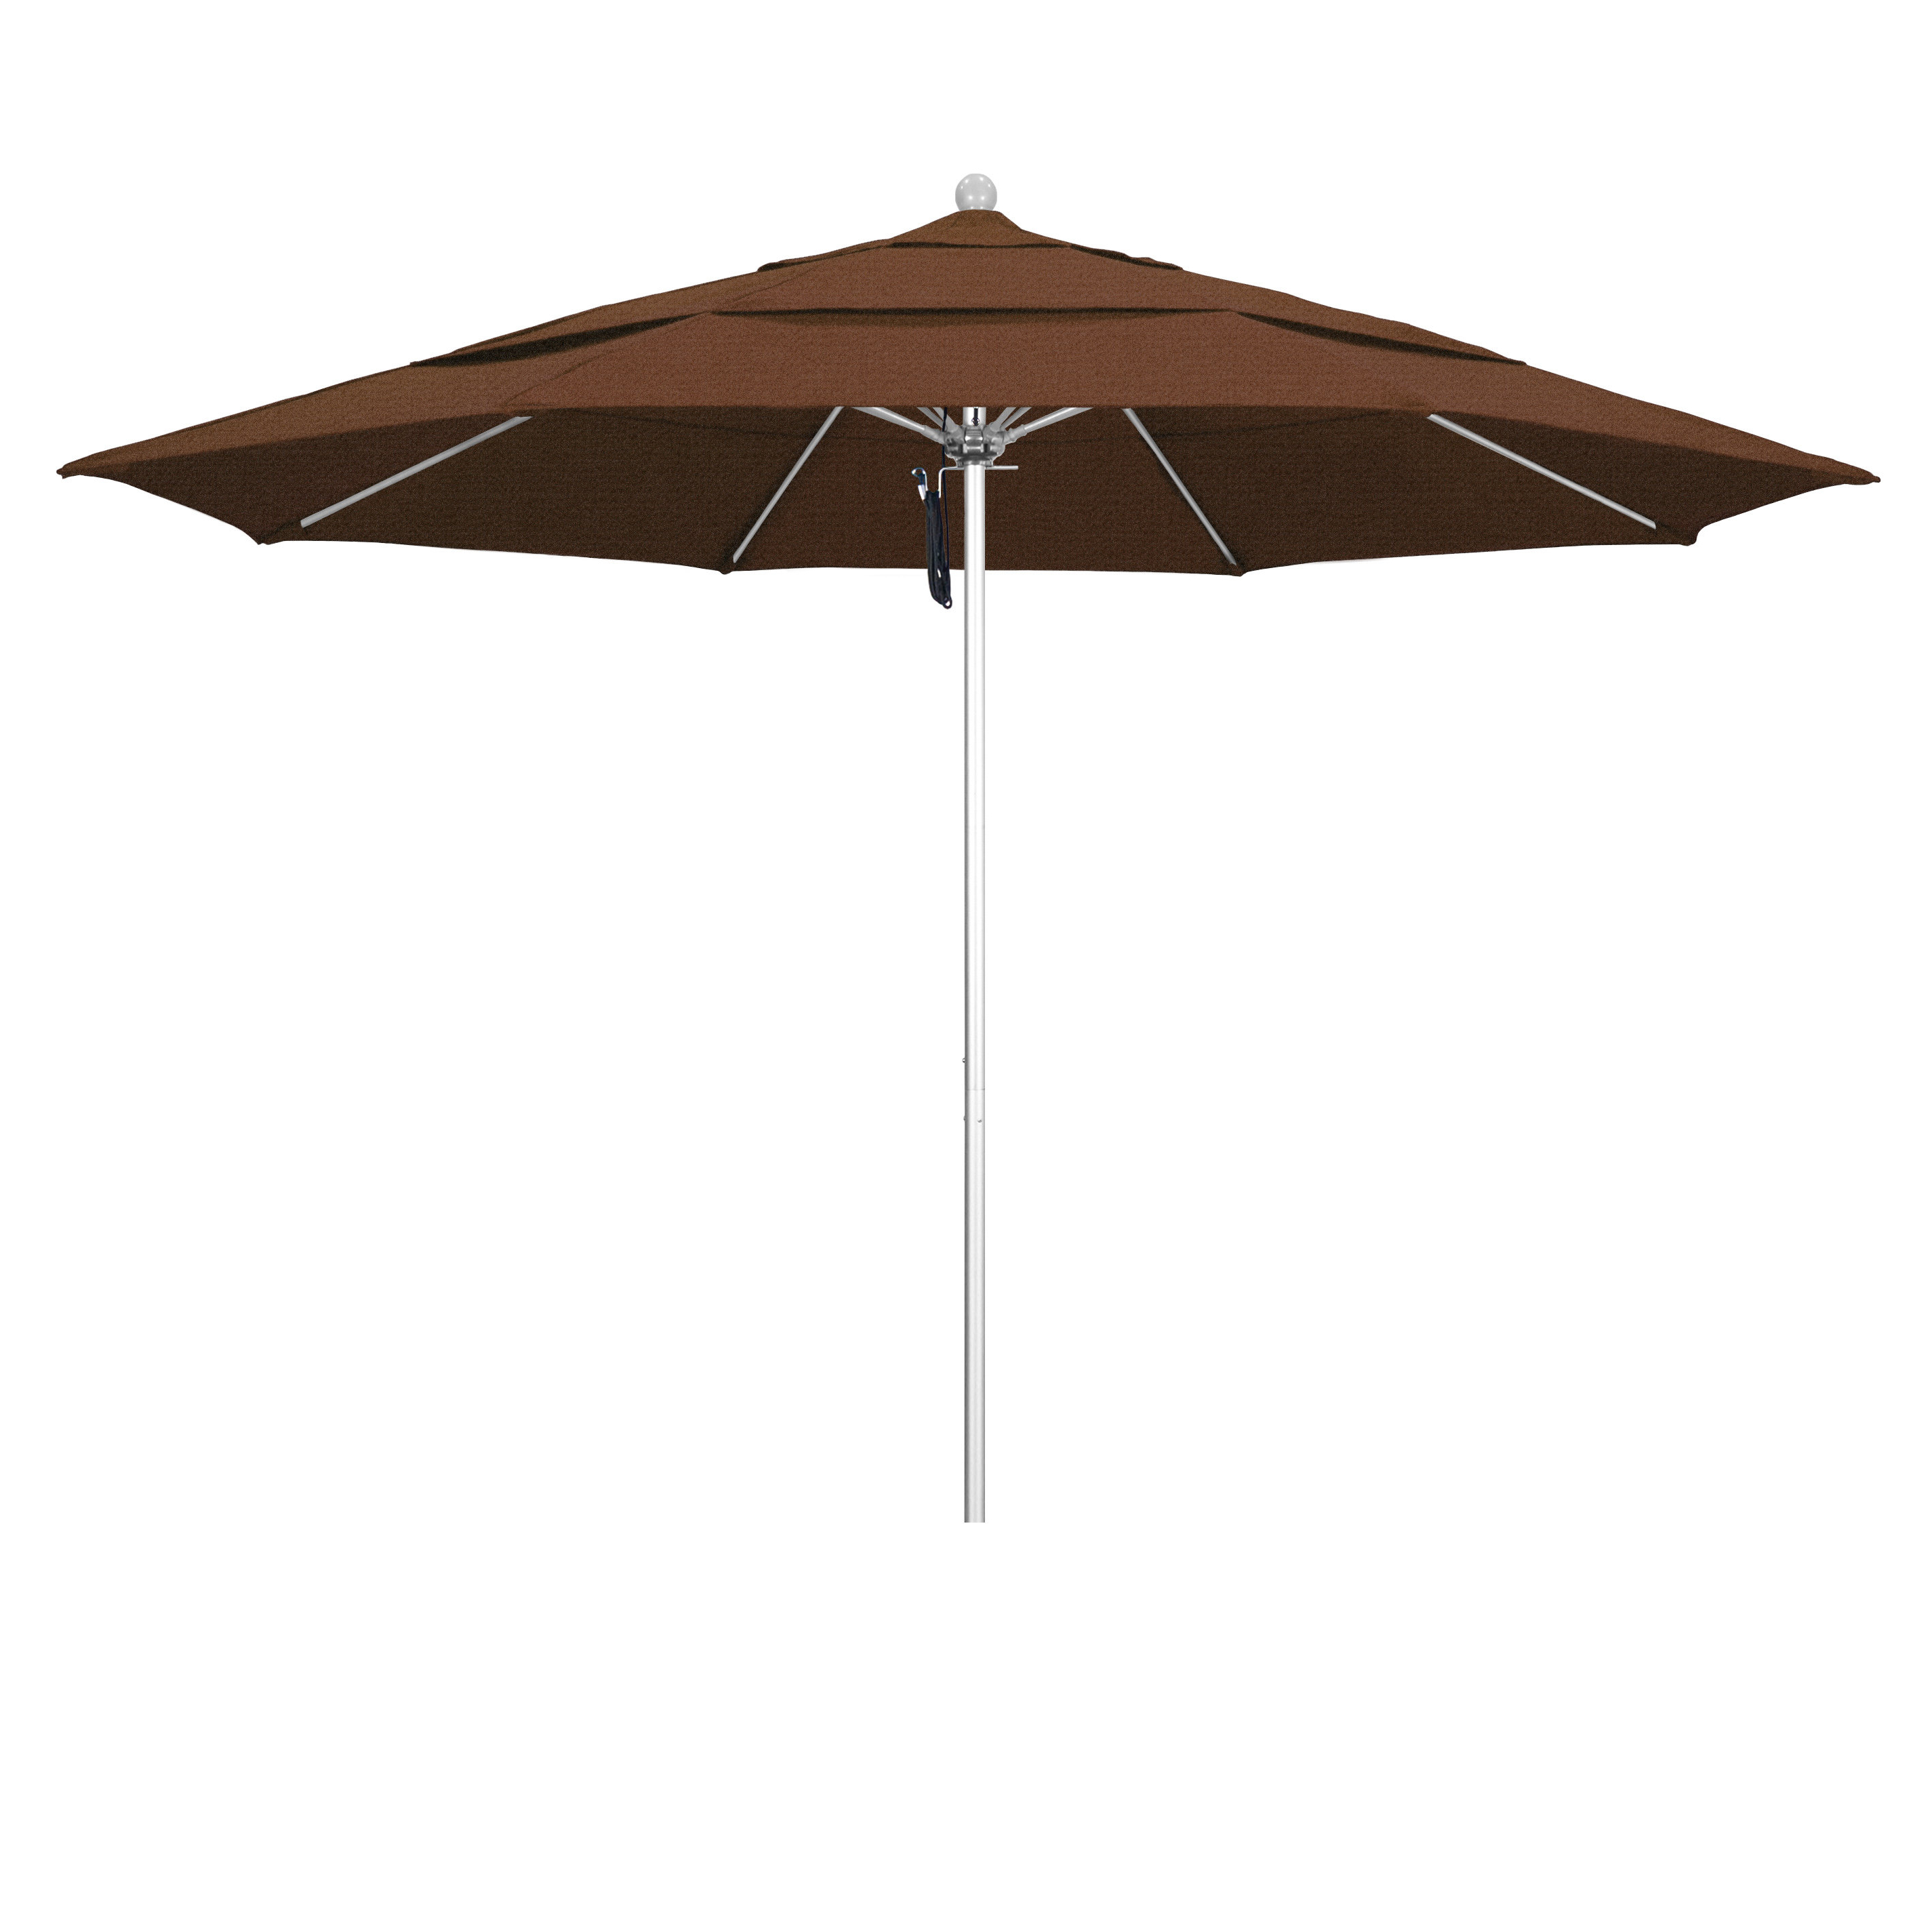 Best And Newest Caravelle Market Umbrellas Within Caravelle 11' Market Umbrella (View 2 of 20)